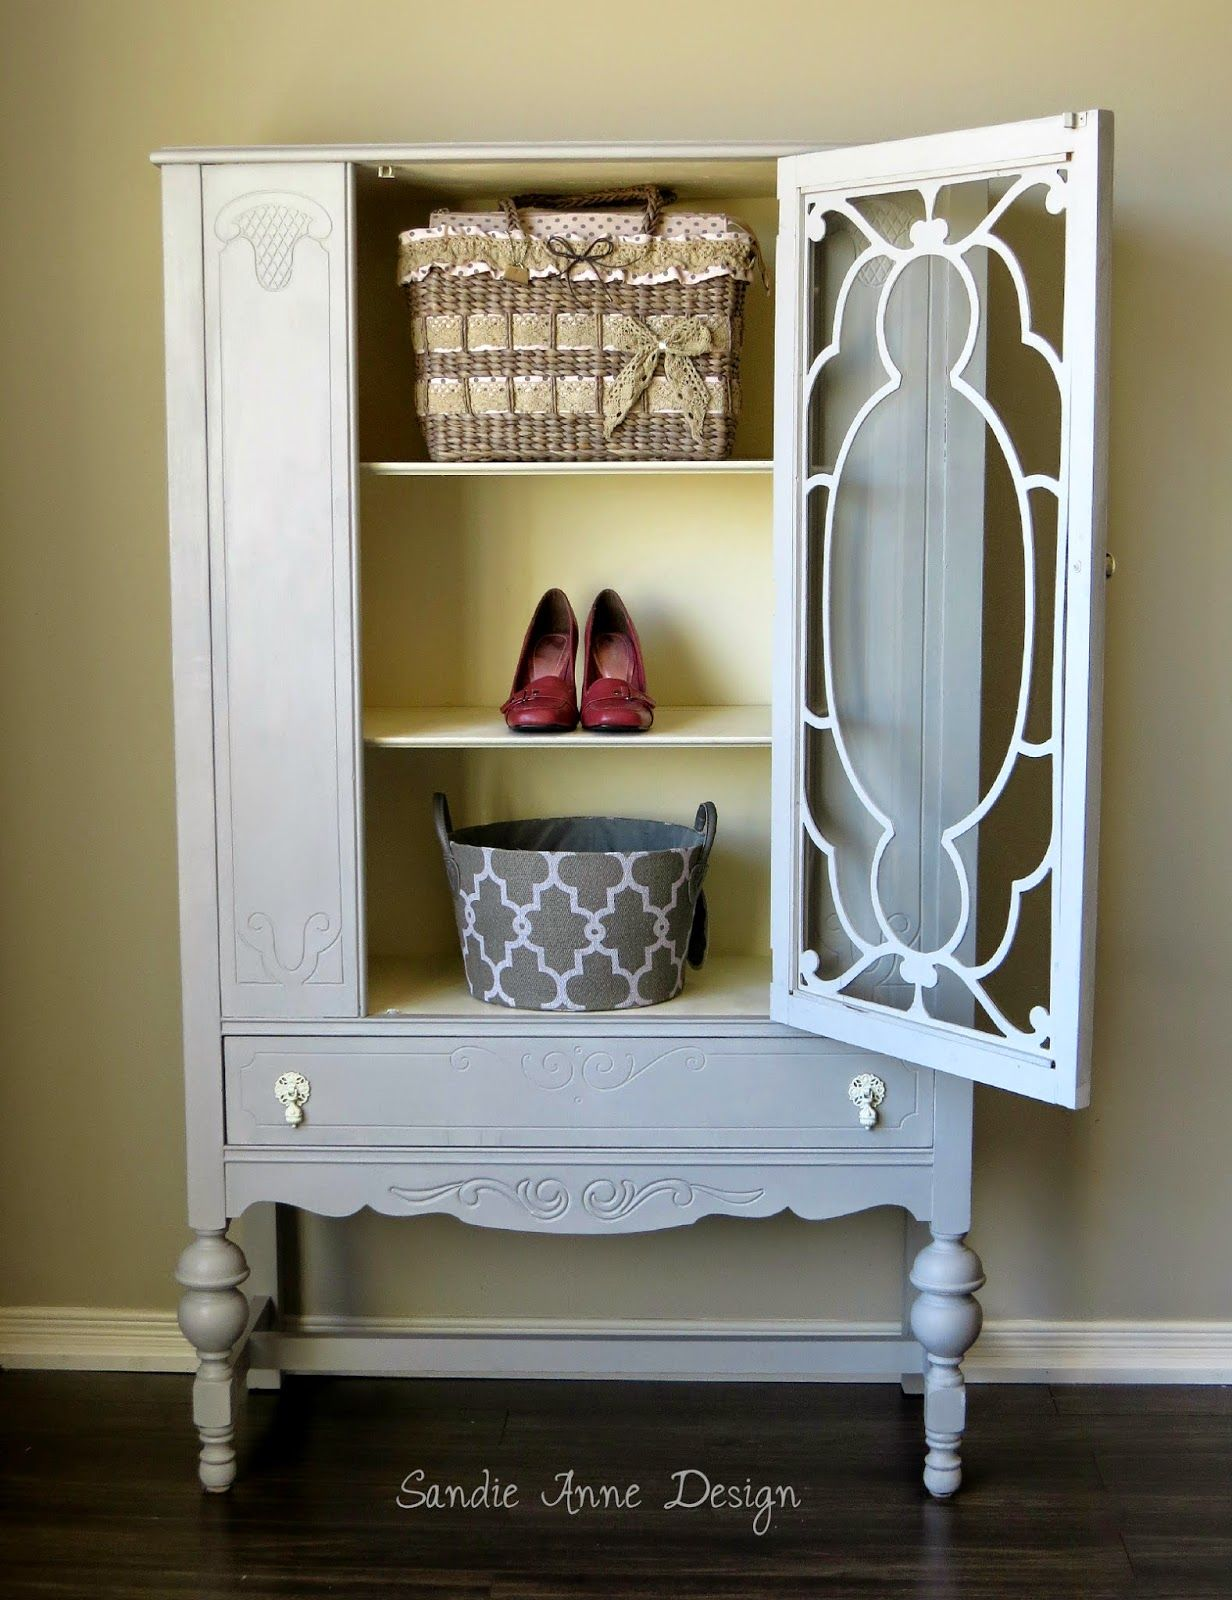 Sophie ~ Reinventing the antique china cabinet. Annie Sloan's Paris Grey and Old White.